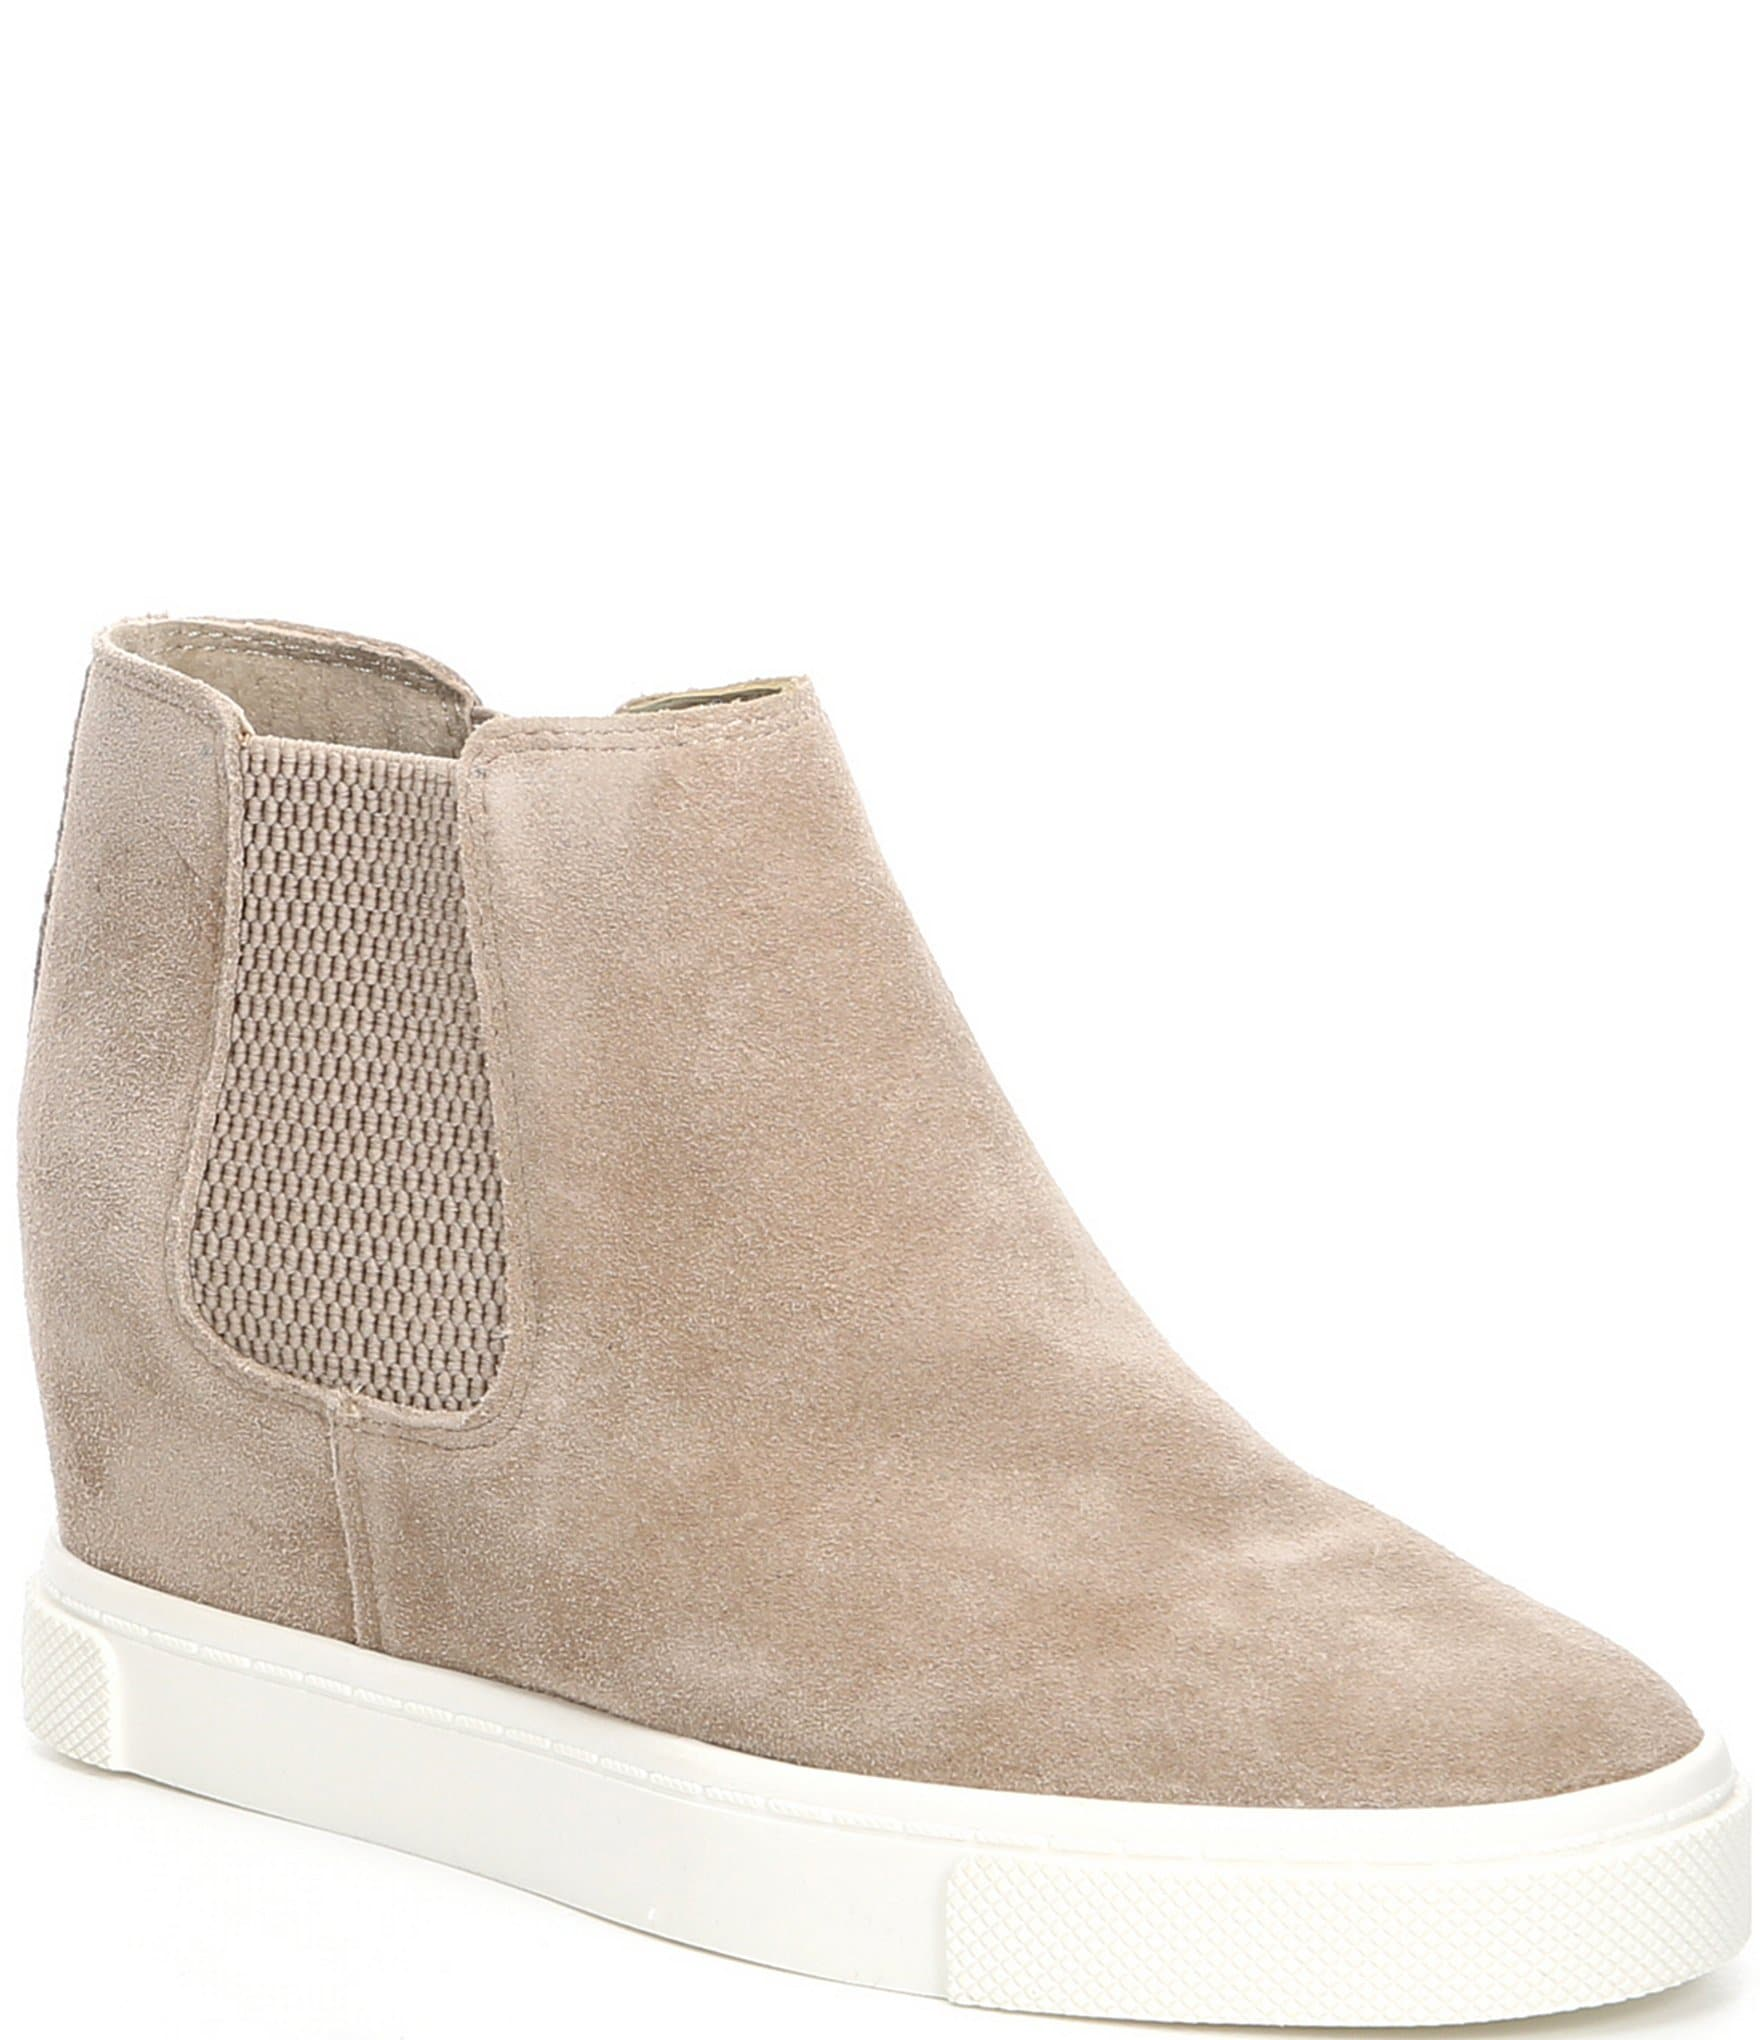 GB Kick Off Suede Double Gore Wedge Sneakers